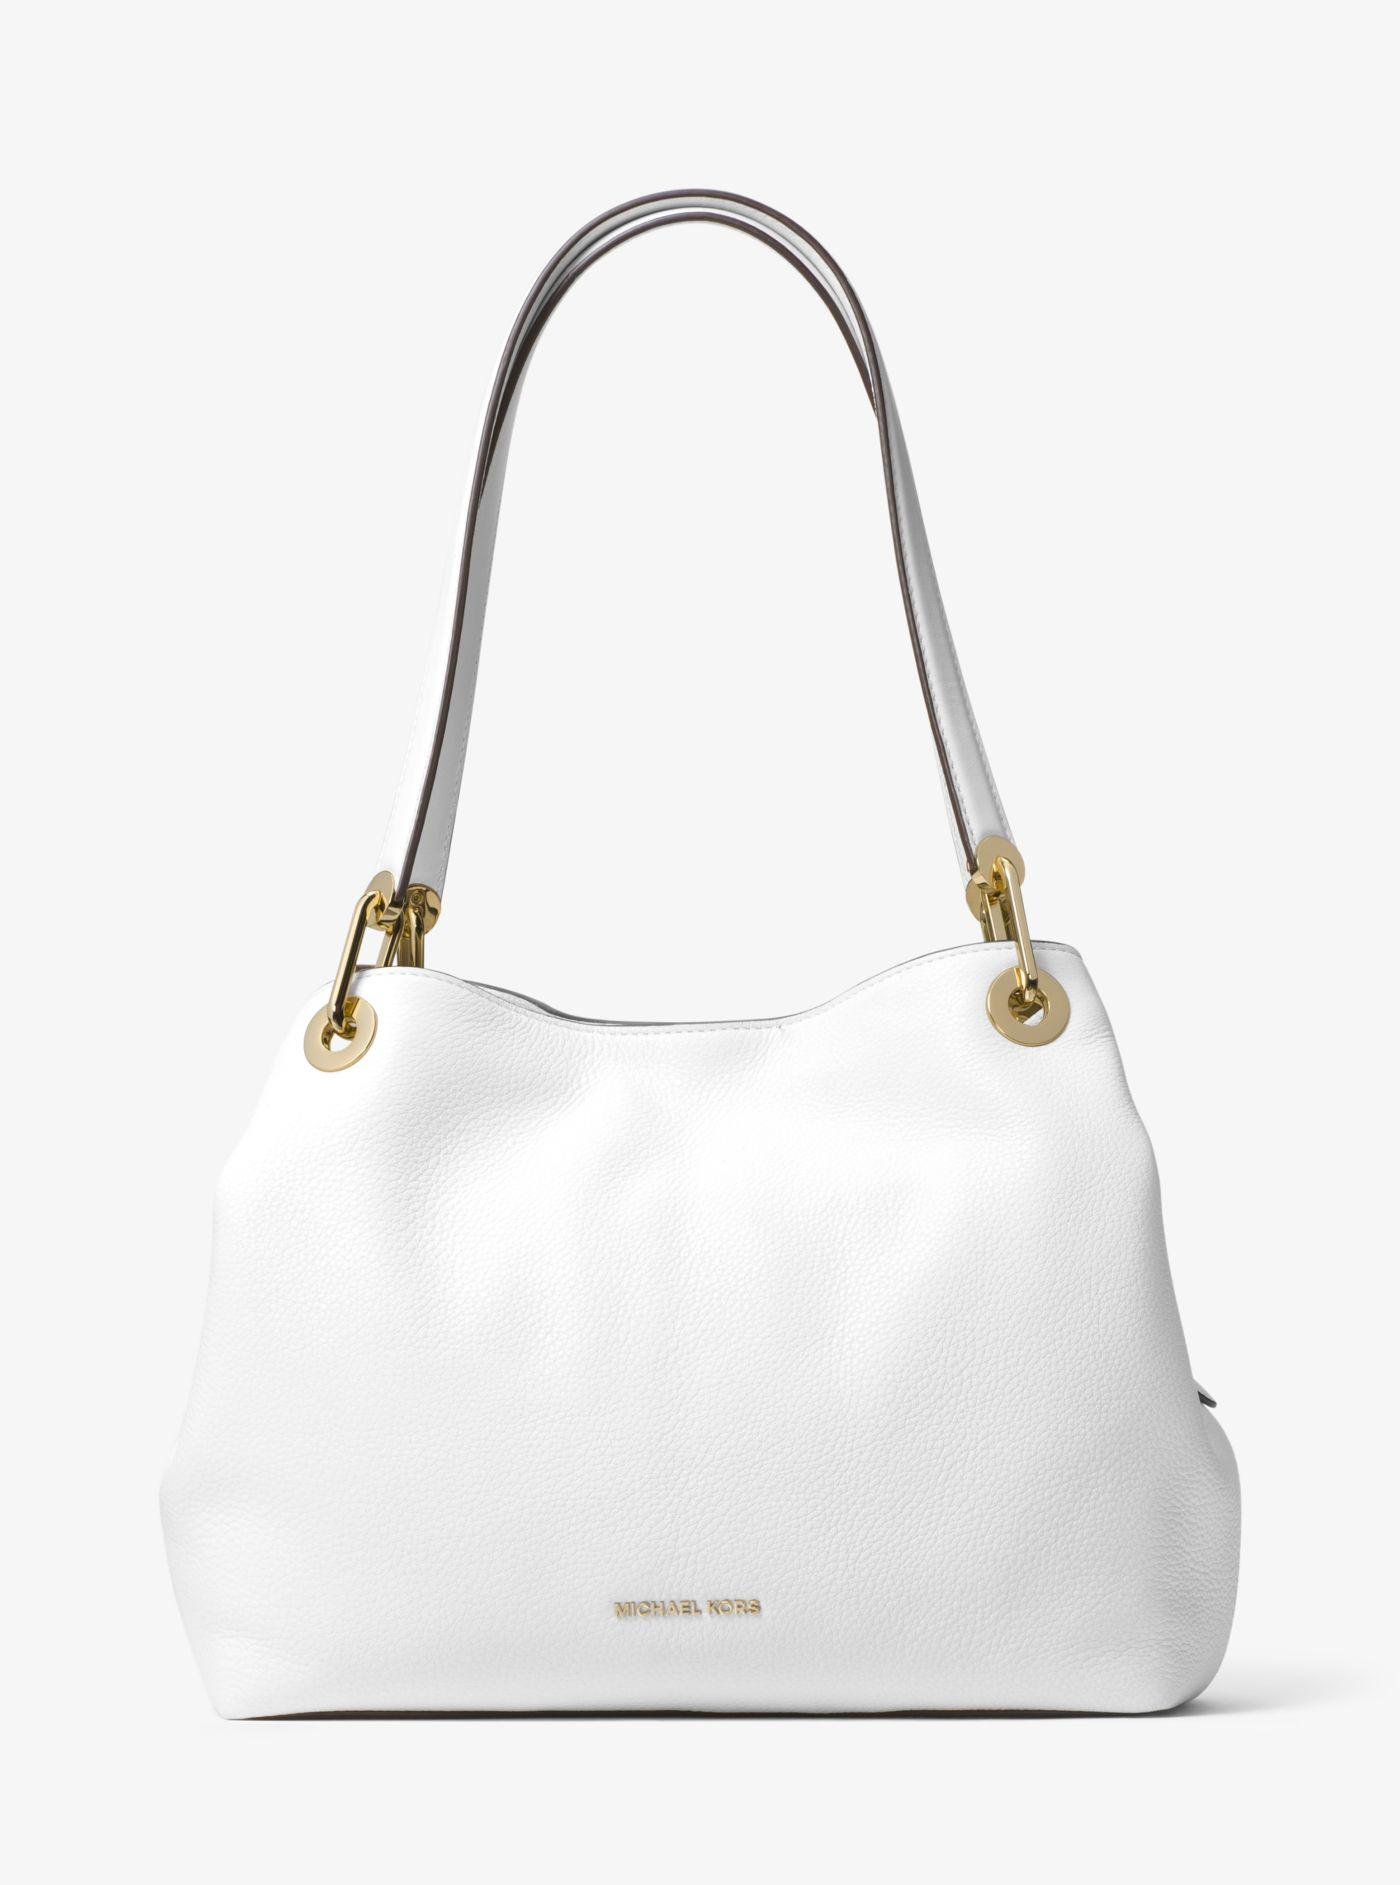 c58da7f8c0ef5 Lyst - Michael Kors Raven Large Leather Shoulder Bag in White